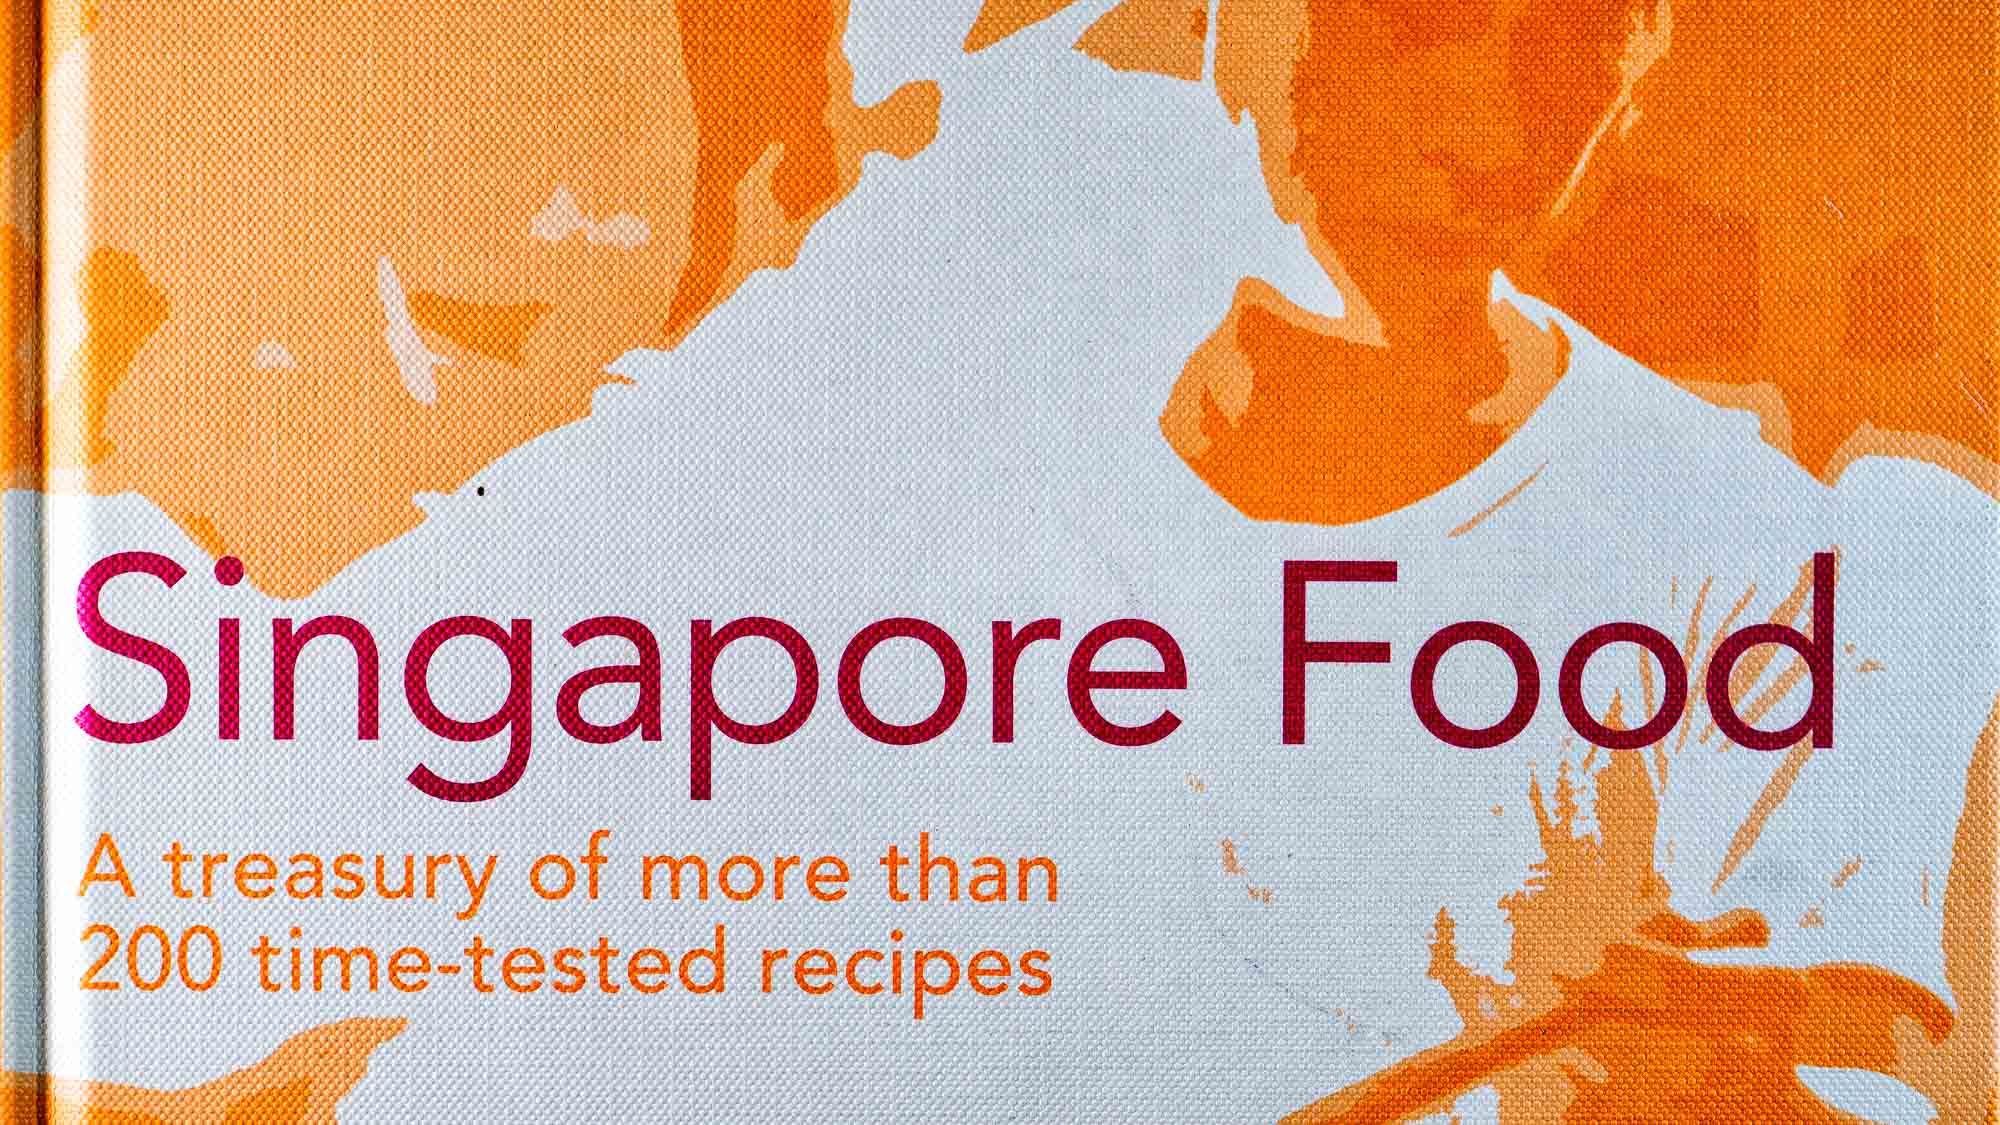 Singapore-Food-by-Wendy-Hutton.jpg